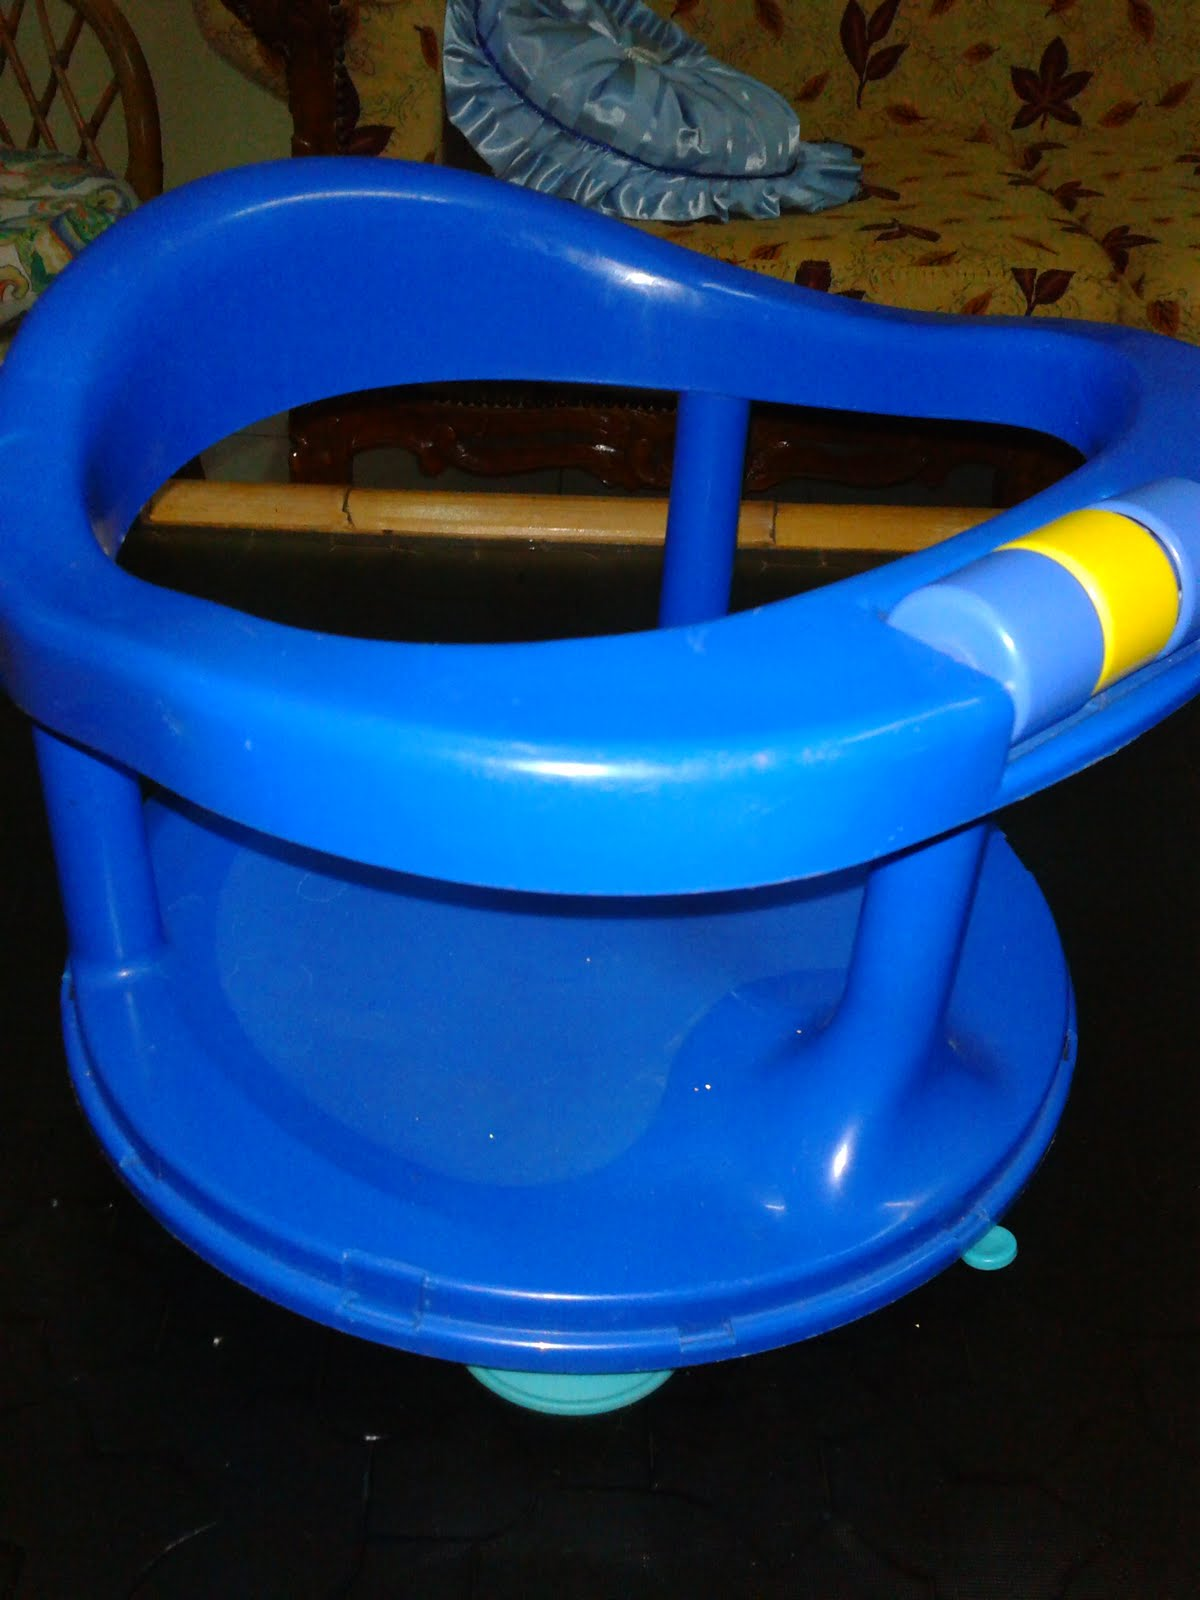 Pu3 Store @~Sold Item~@: Safety 1st Swivel Baby Bath Seat